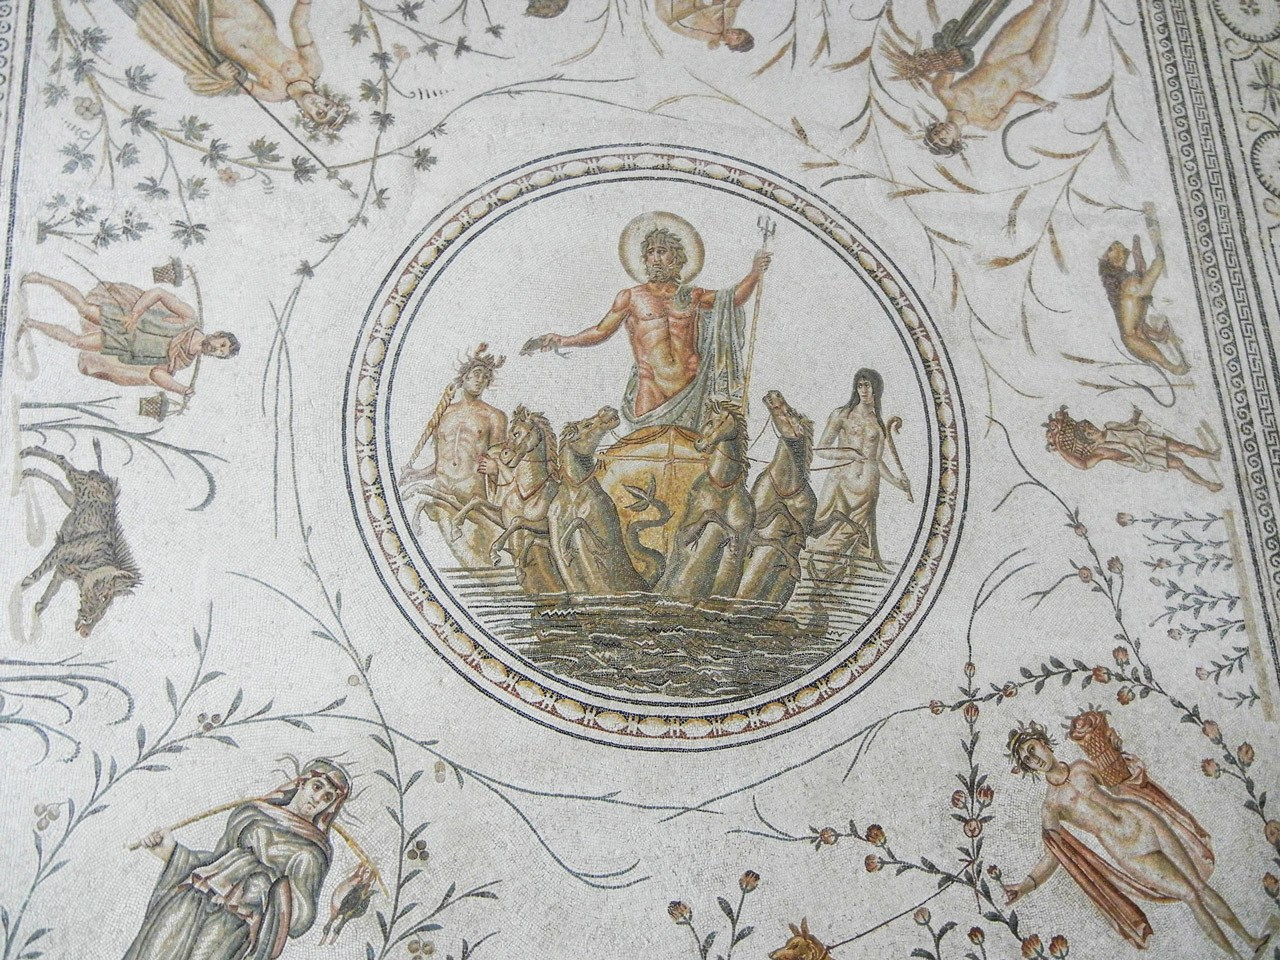 One of the many amazing Roman mosaics to be found at the Bardo Museum in Tunis...a must do.